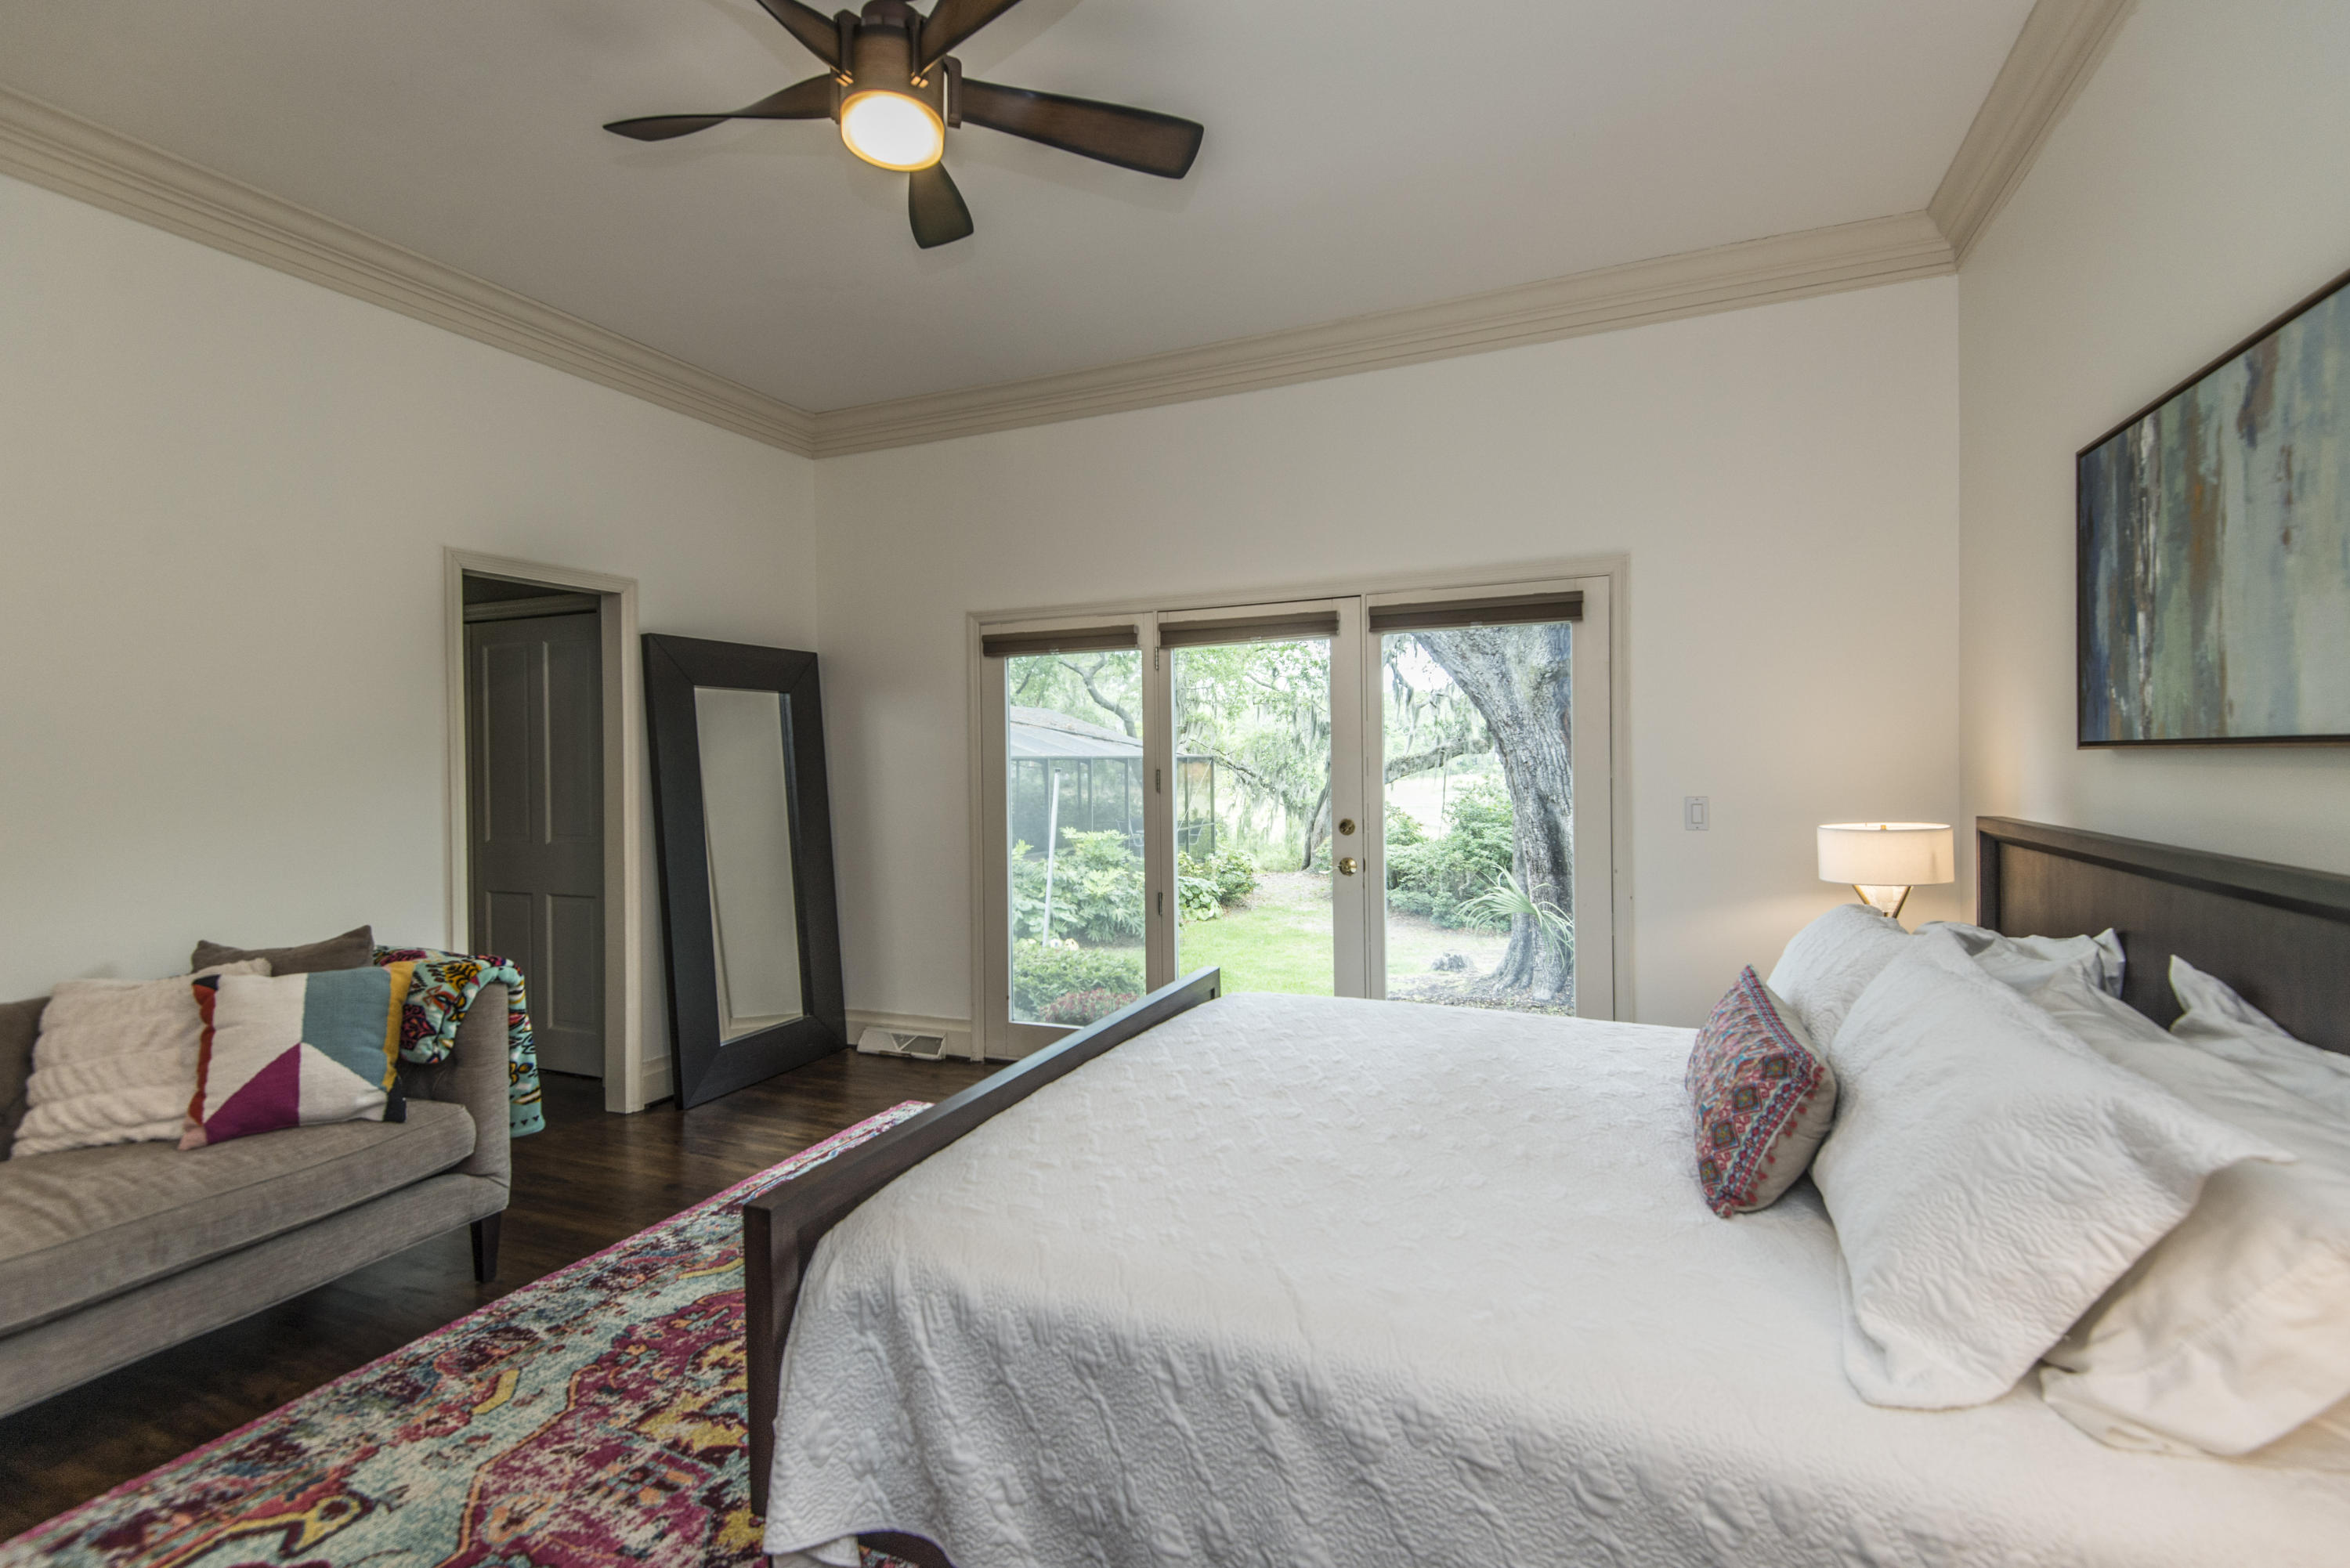 Stiles Point Plantation Homes For Sale - 921 Cotton House, Charleston, SC - 29